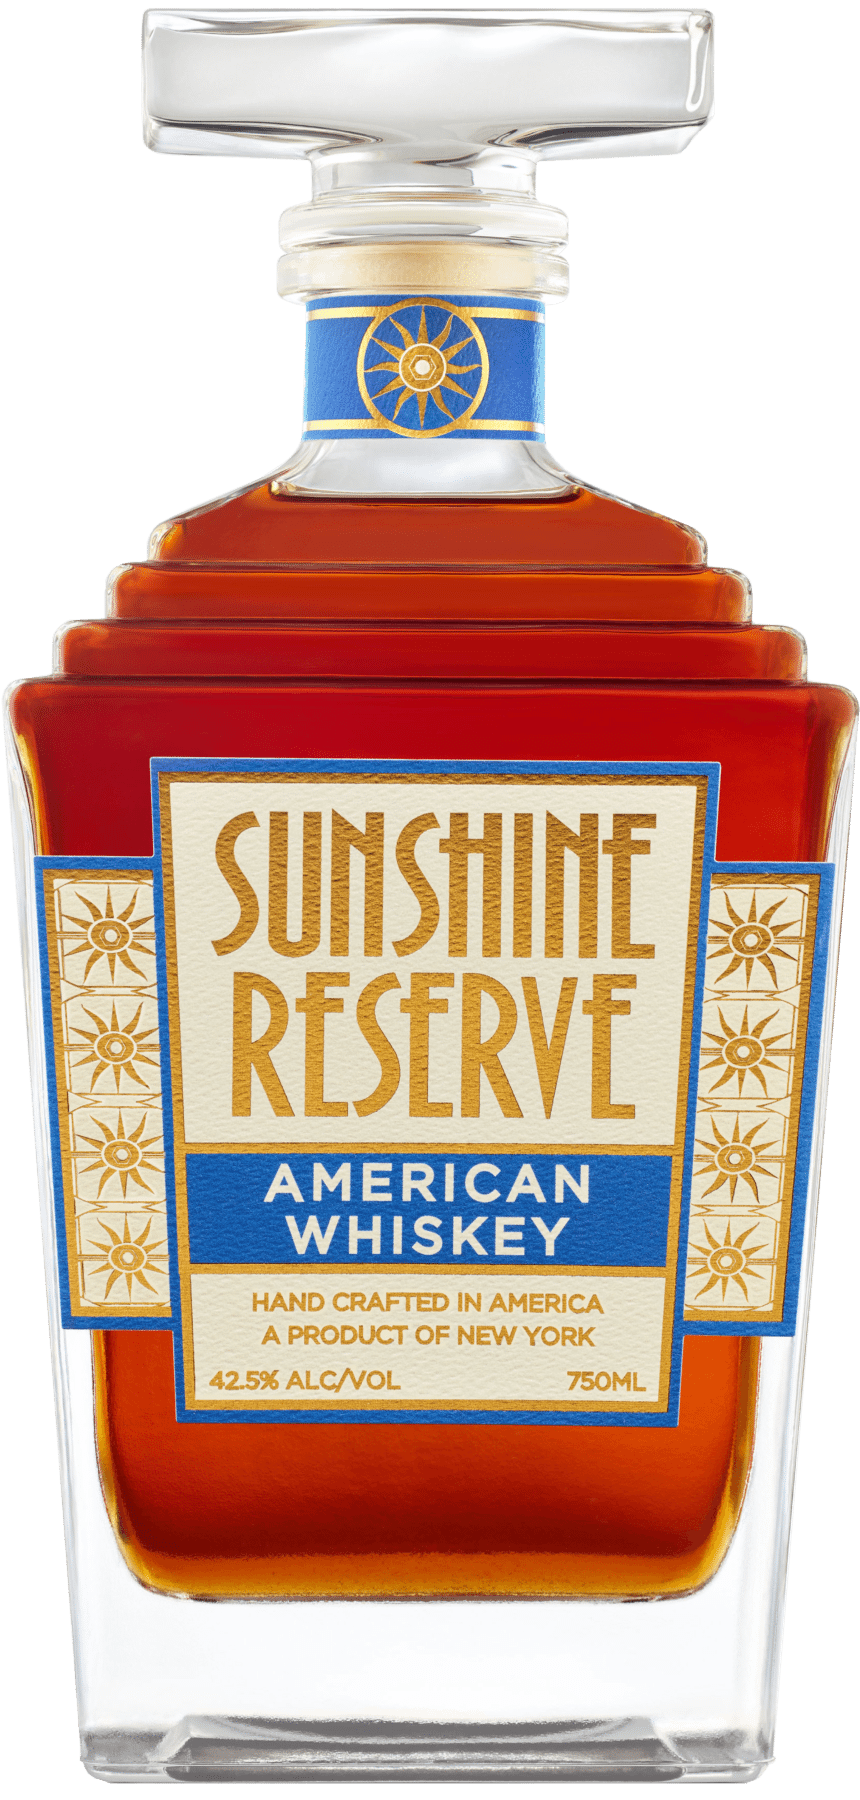 USA Sunshine Reserve Whiskey